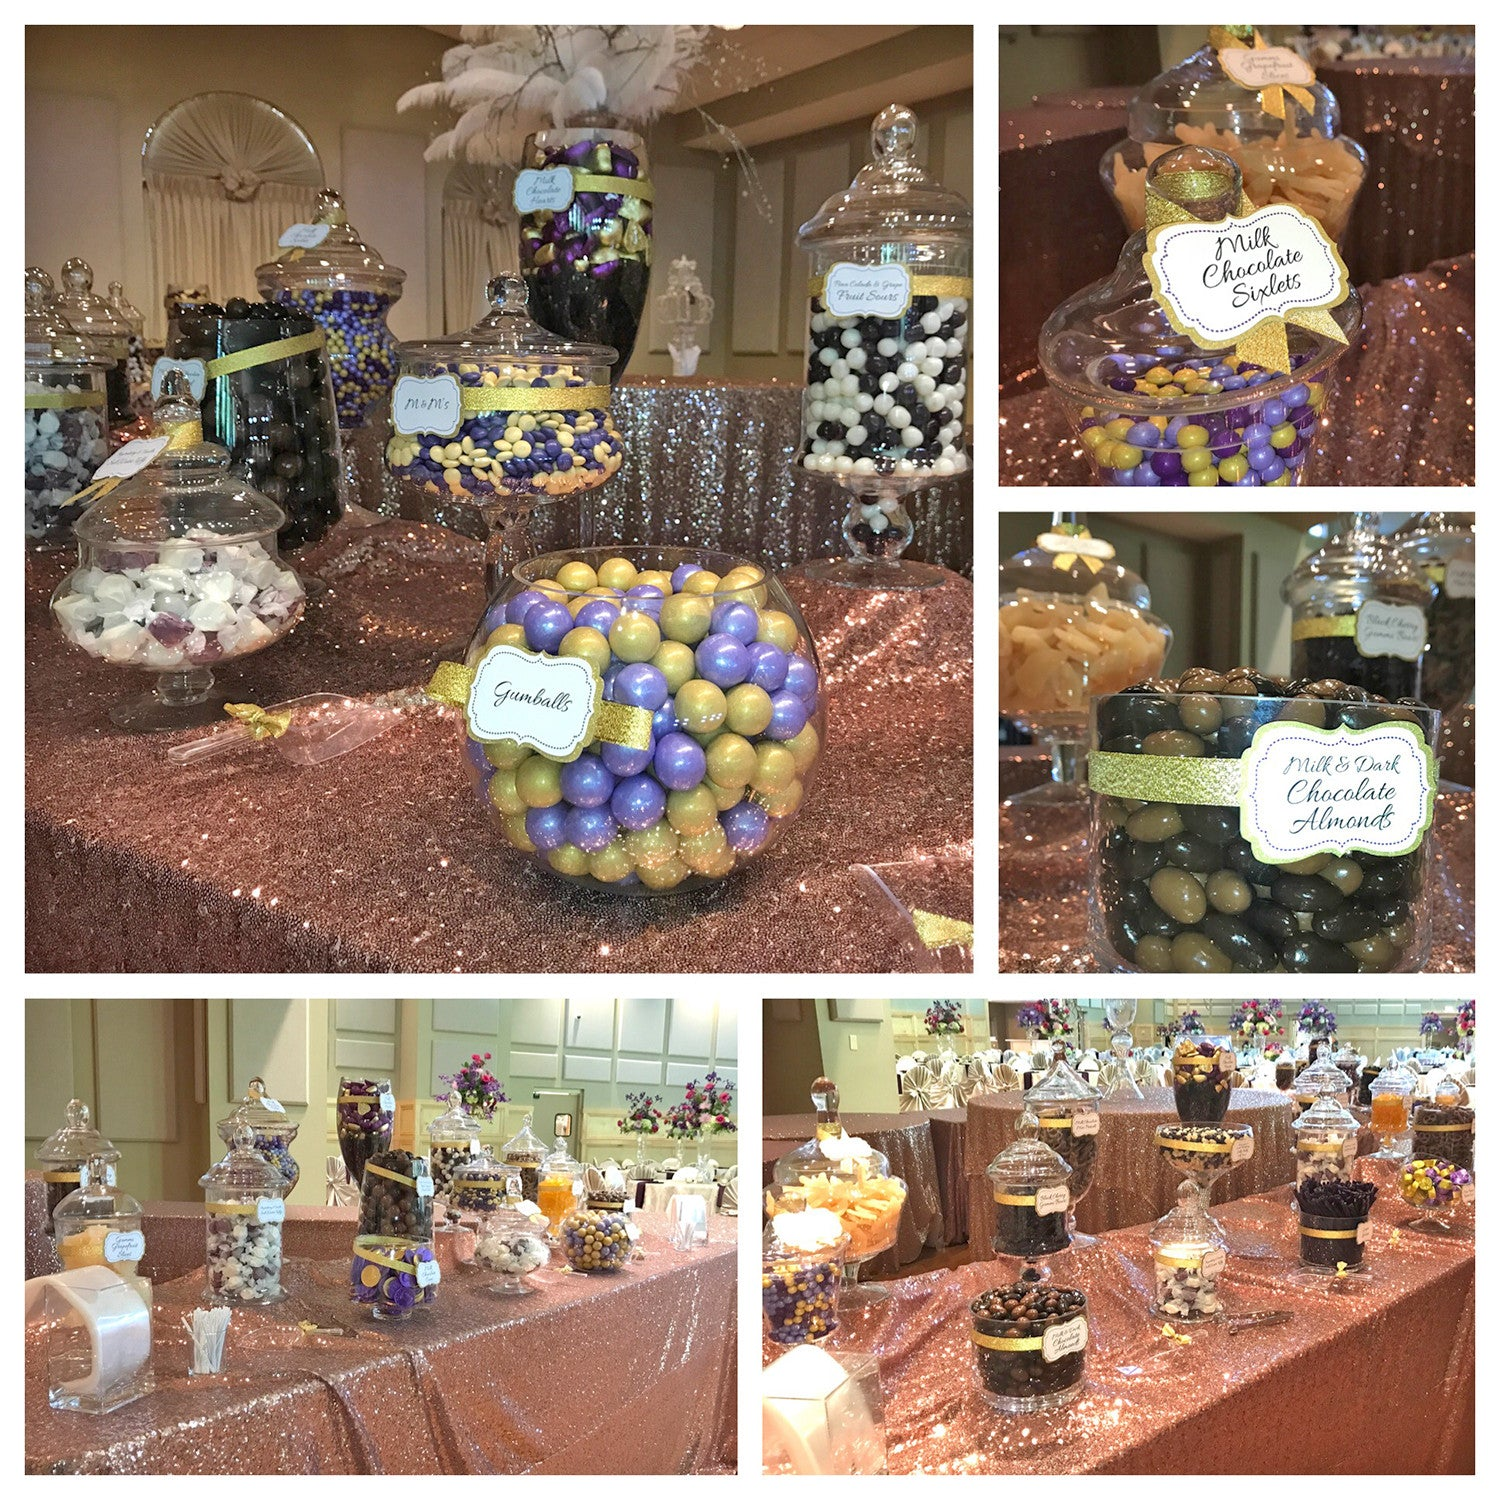 Admirable Candy Buffet Gallery Of Displays For Weddings Parties And Download Free Architecture Designs Embacsunscenecom